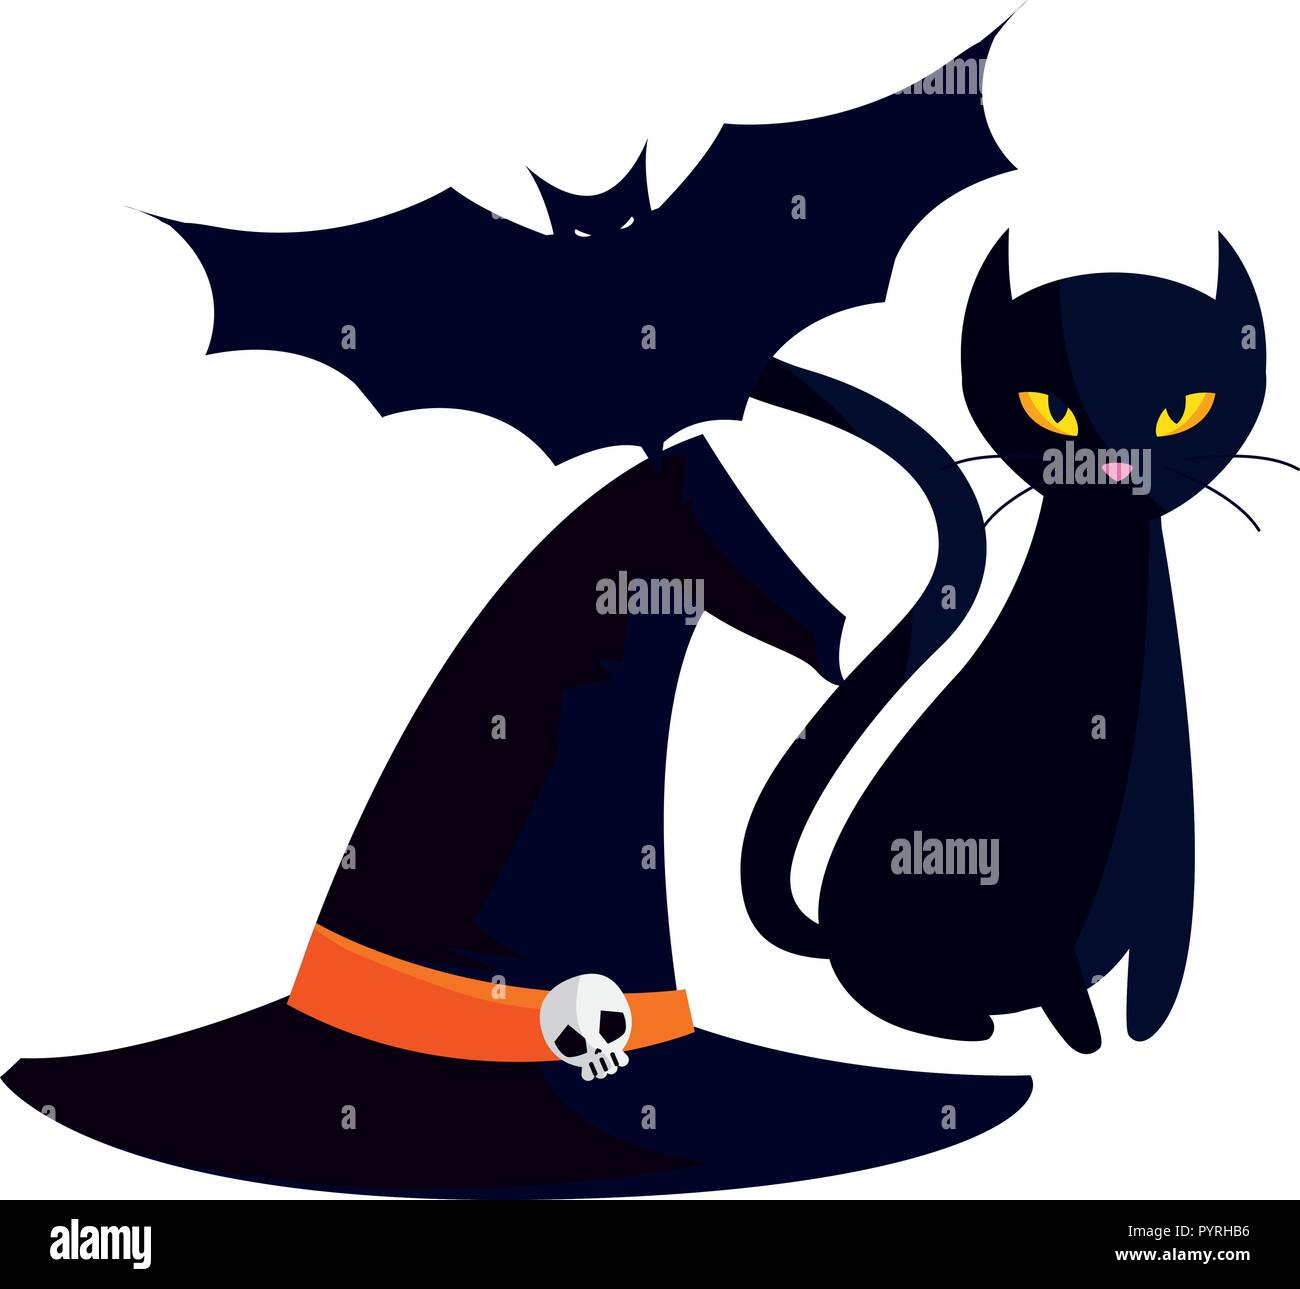 witch hat with bat and cat halloween icons vector illustration design - Stock Image